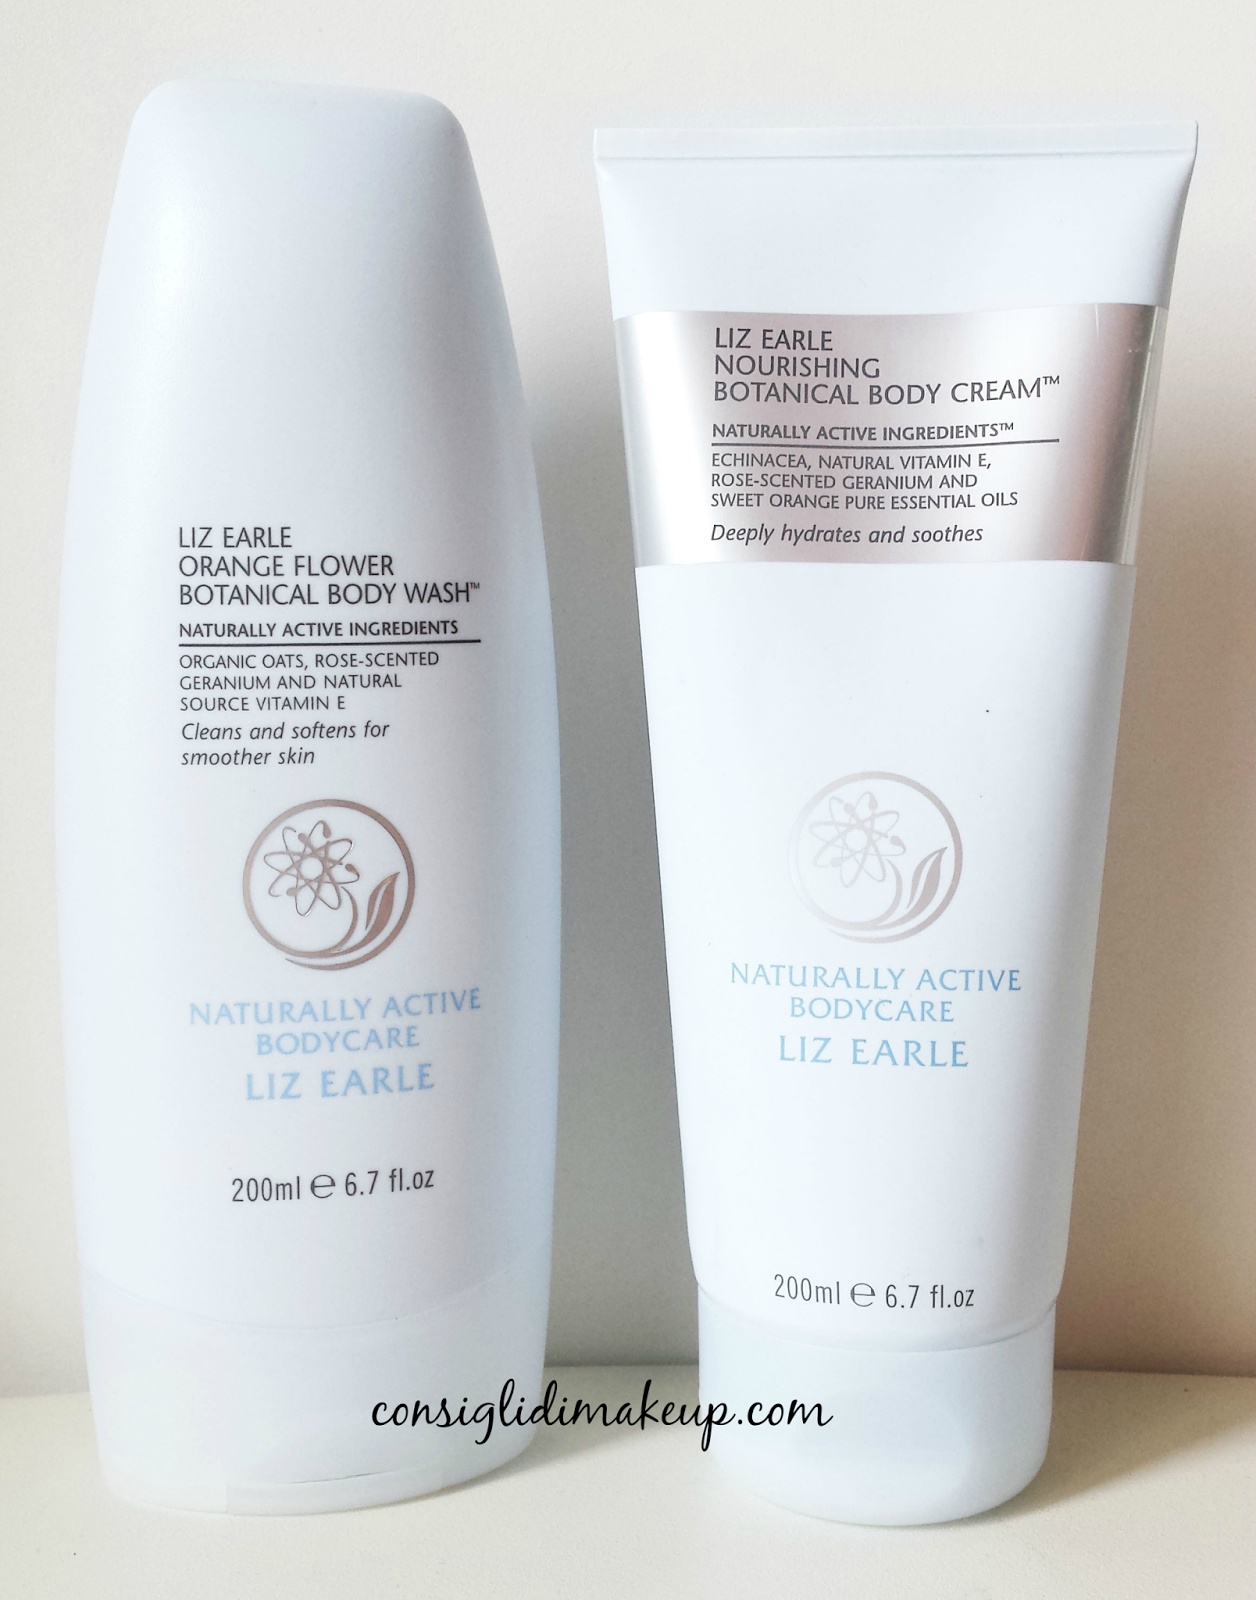 Review: Body Cream & Body Wash - Liz Earle